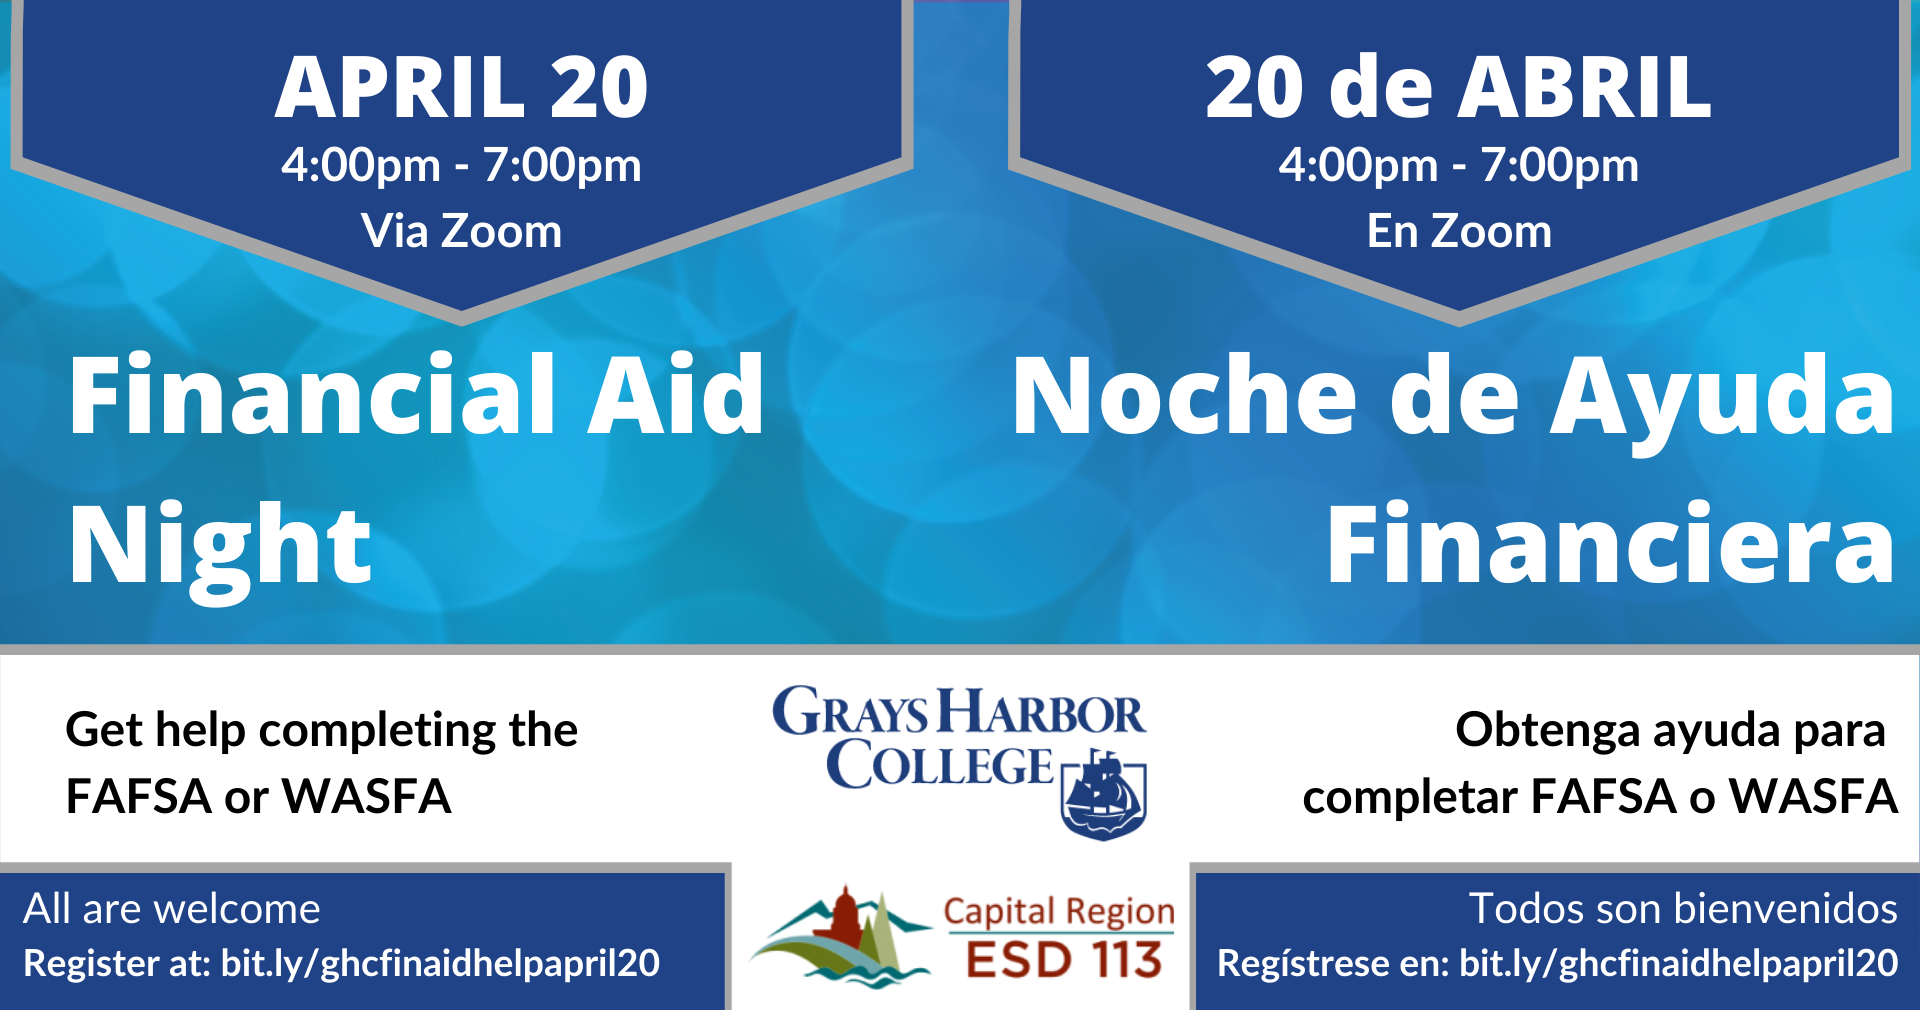 April 20 4:00pm - 7:00pm via Zoom. Get help completing the FAFSA or WASFA. All are welcome